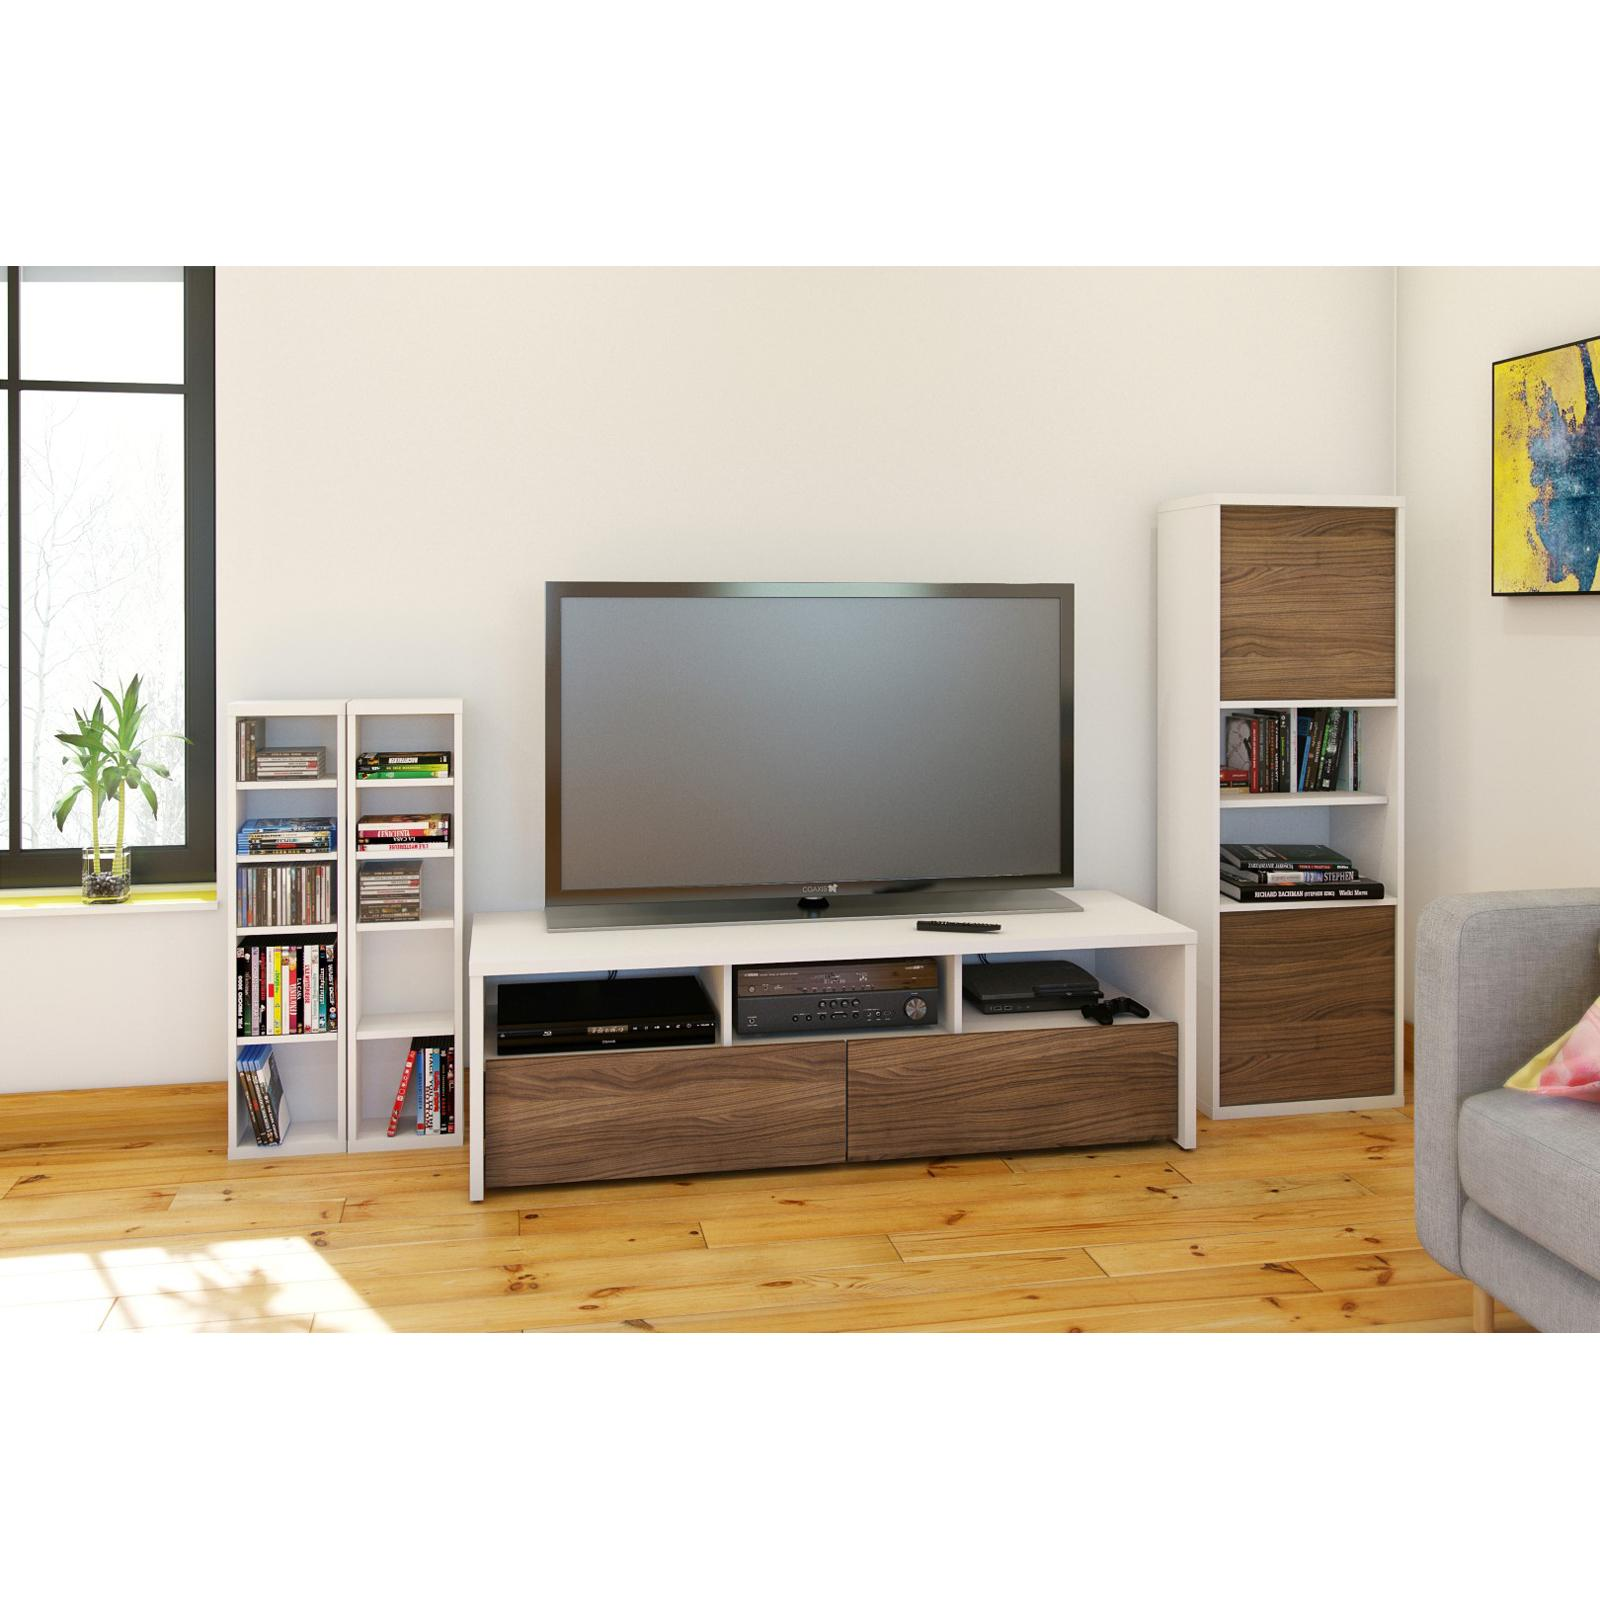 Nexera Liber T Modular Design Your Own Storage And Entertainment System 60 In